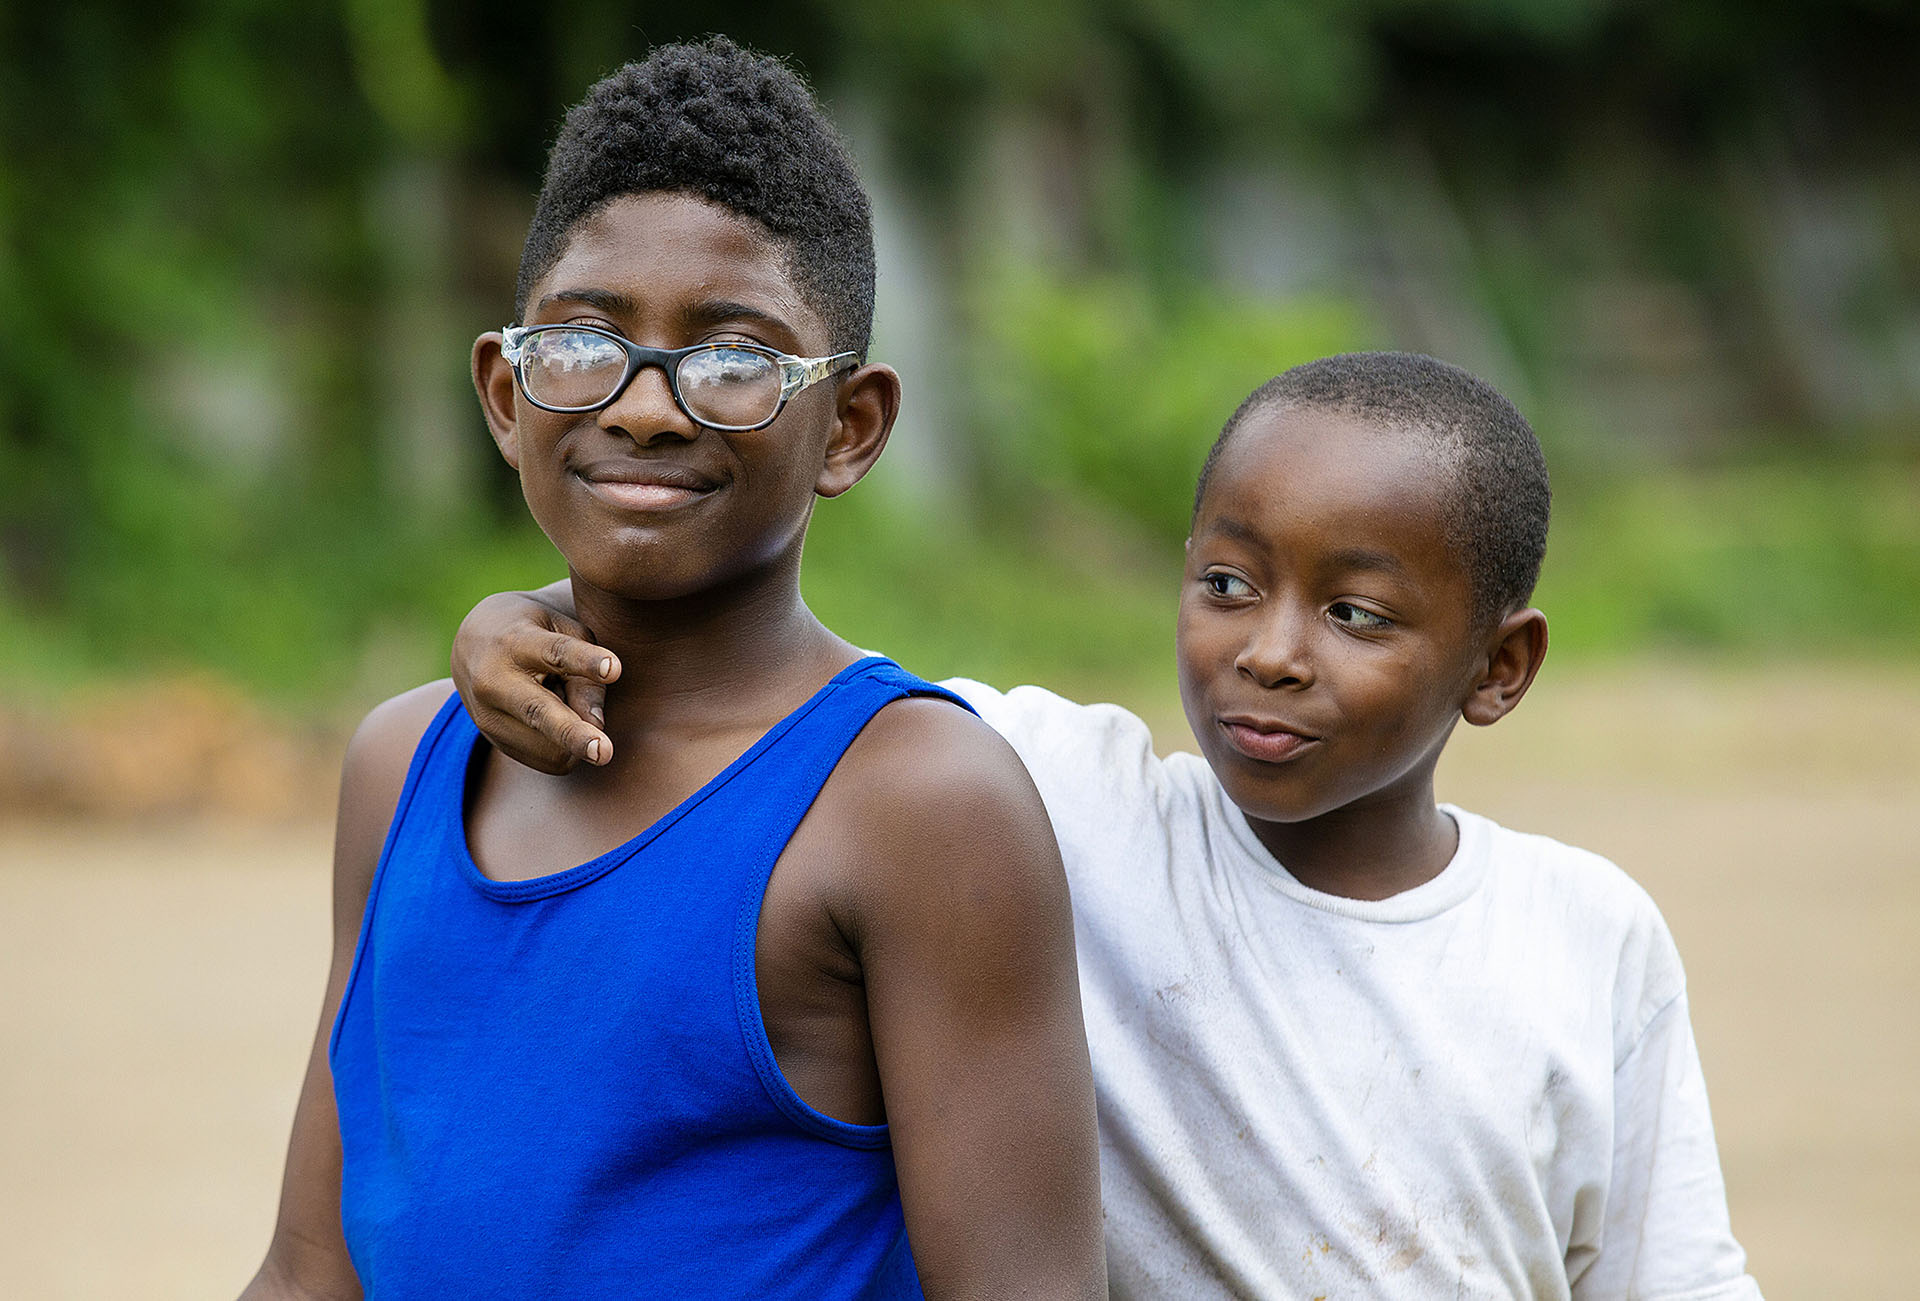 Shannon Sturgis, 11, and Jamichael Burgess, 8, pose for a photograph on Leonard Street in Jackson's Farish Street Historic District Thursday, July 5, 2018. (Photo by Eric J. Shelton/GroundTruth)